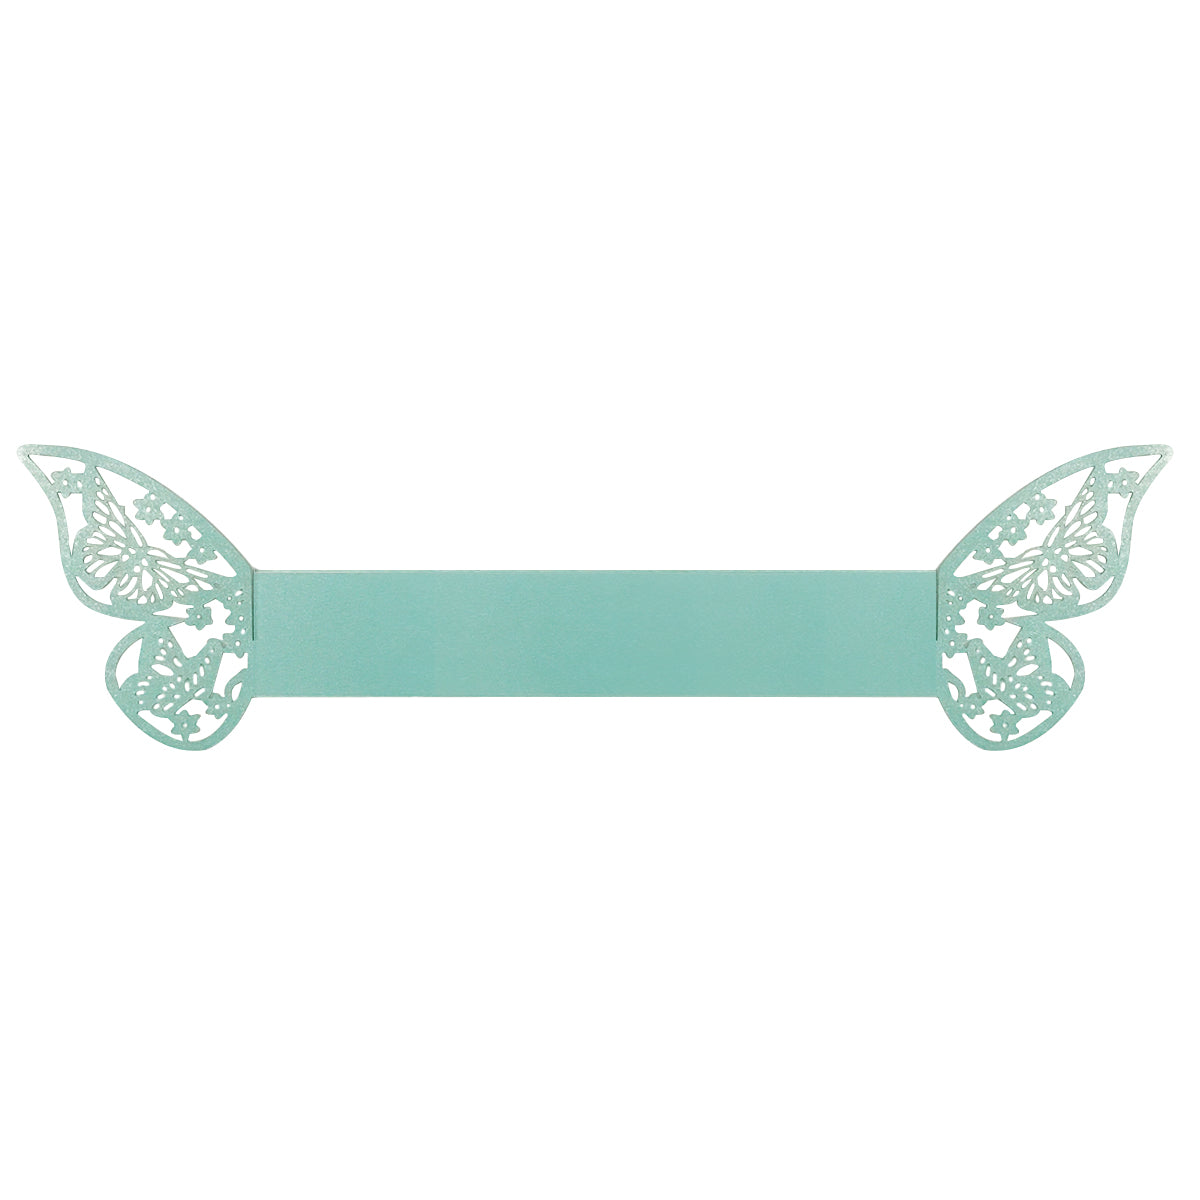 Wrapables Butterflies Wedding Decor Napkin Rings (Set of 50)